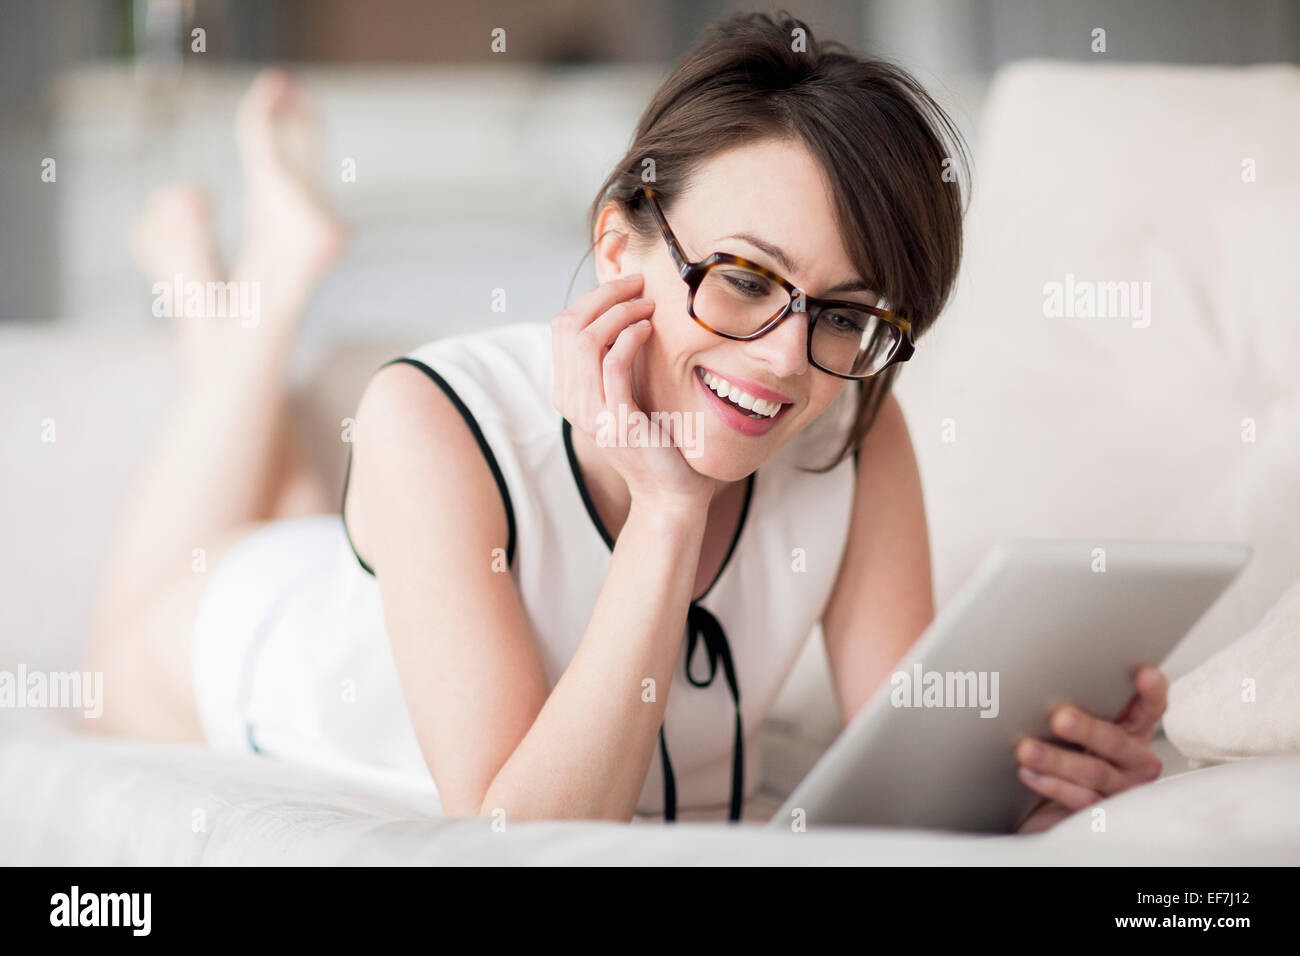 Woman lying on the bed and looking at a digital tablet - Stock Image